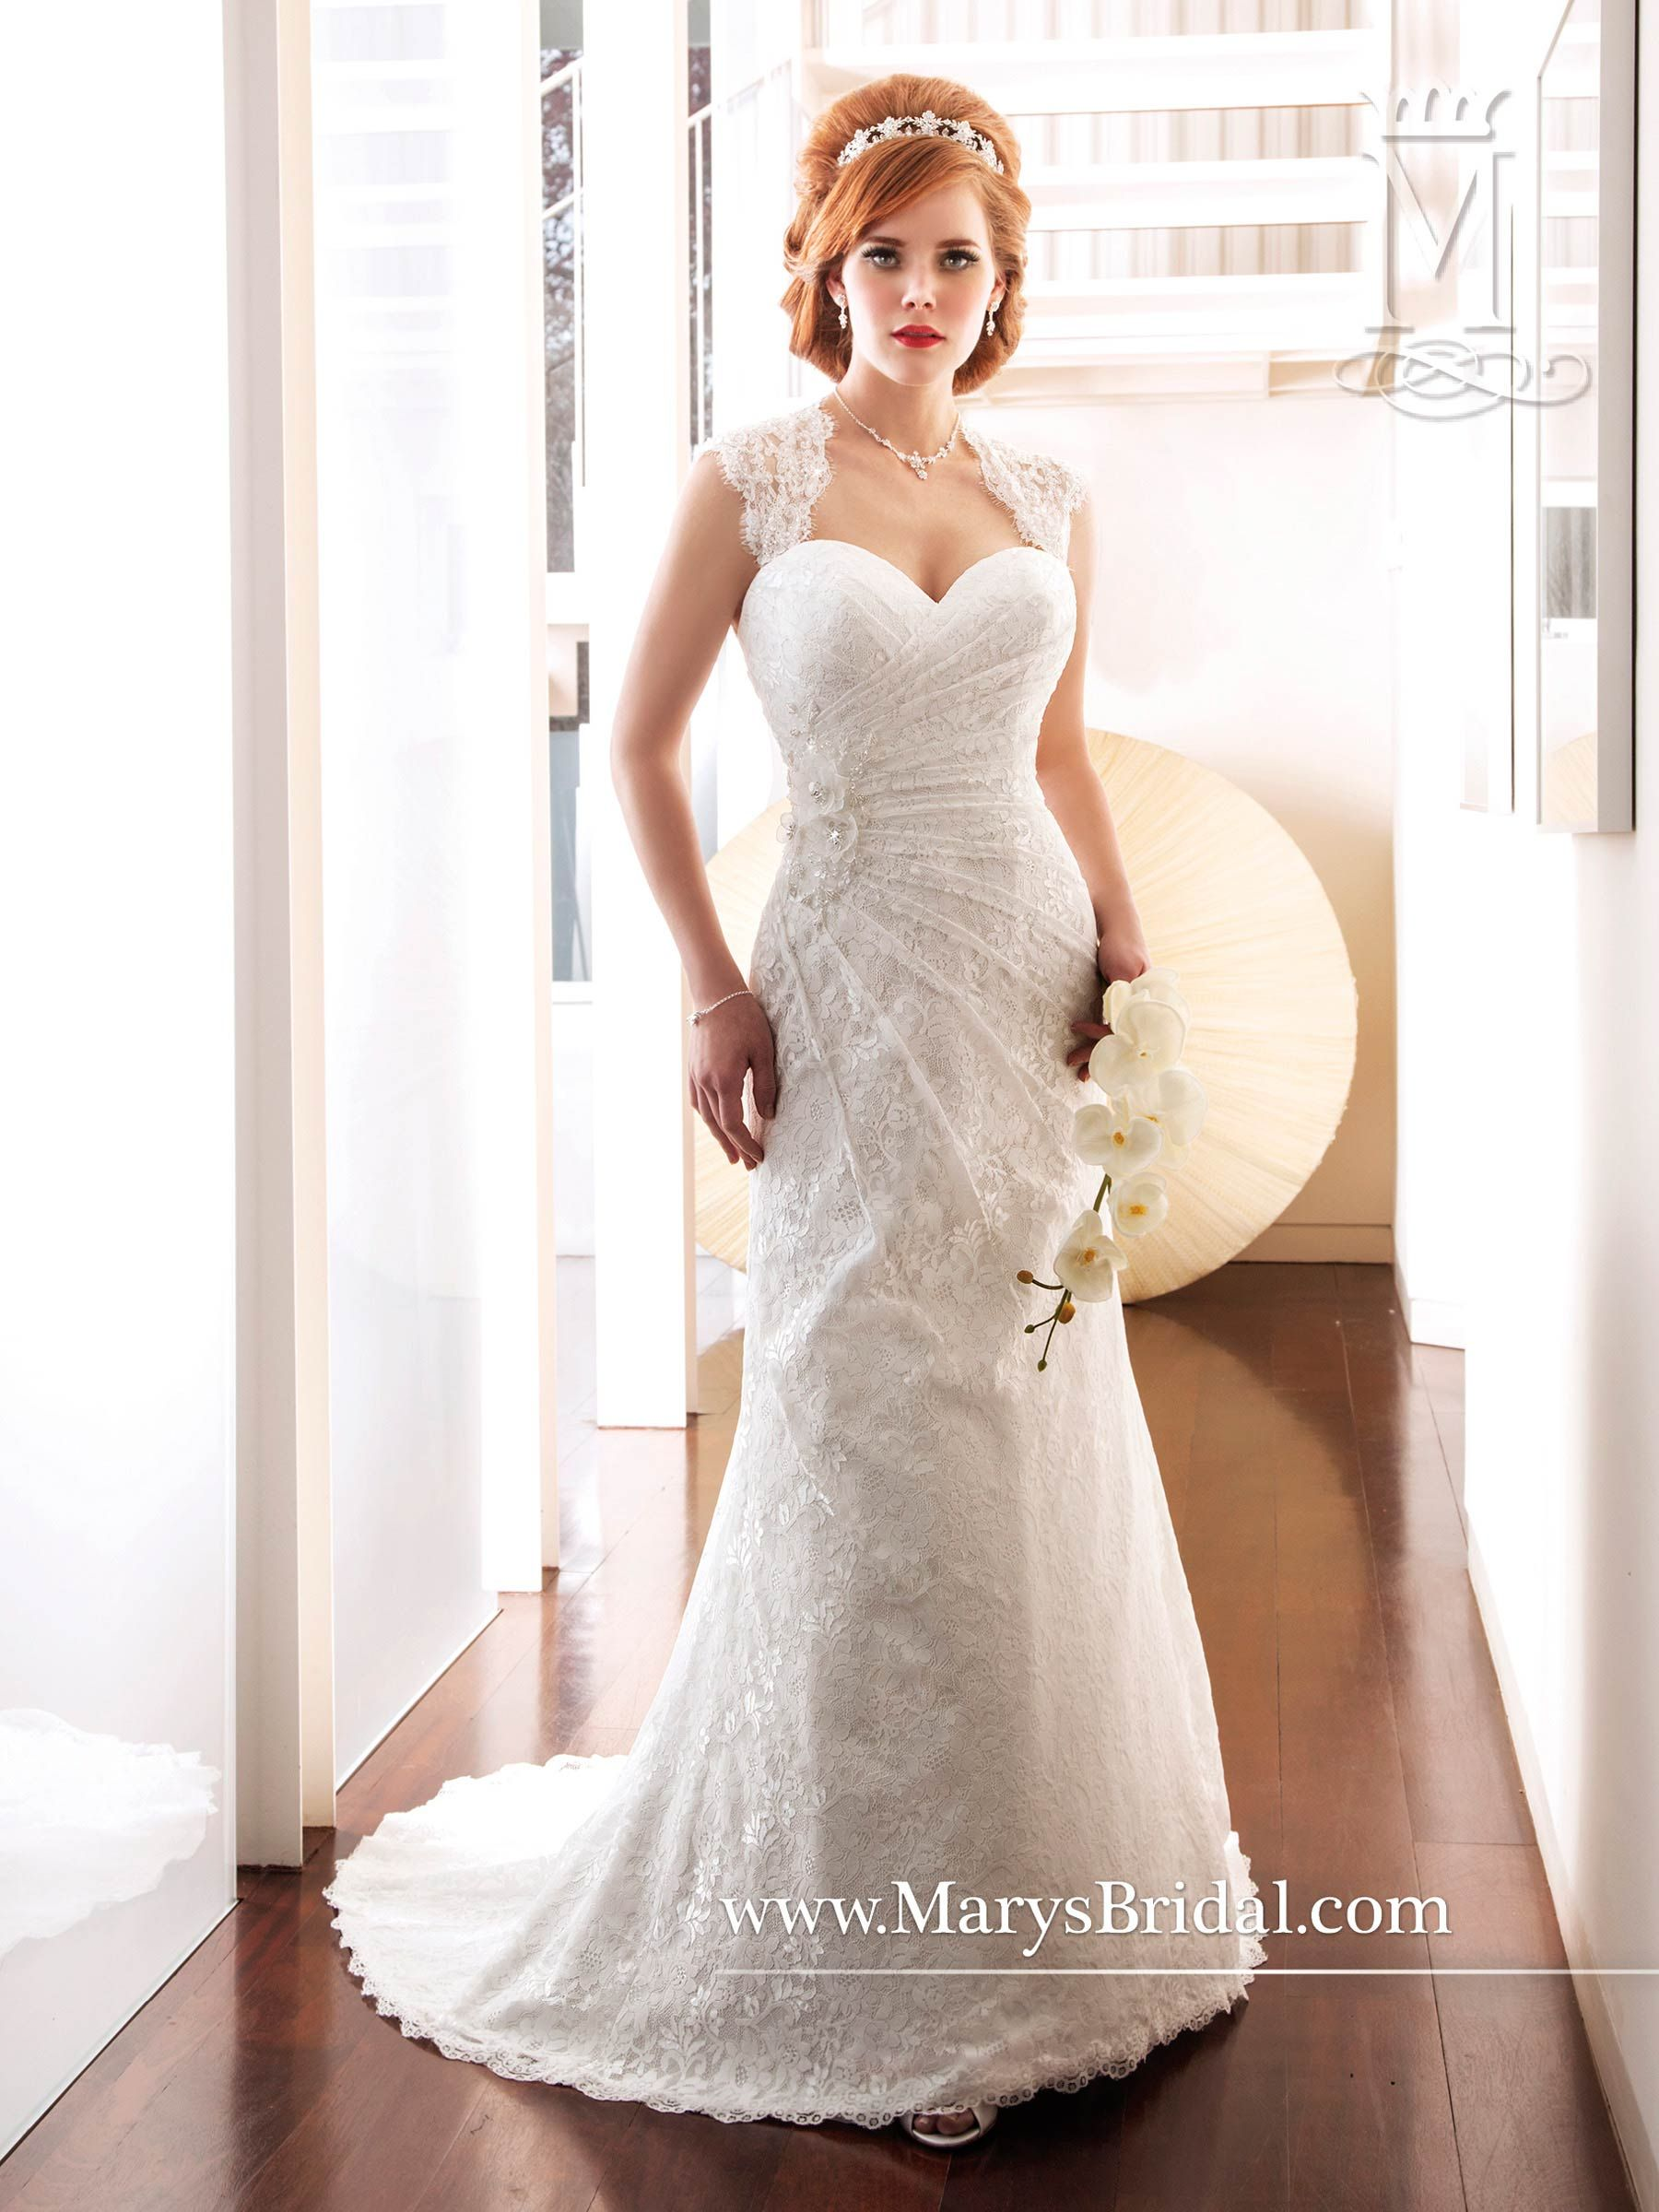 Mary\'s style ID 6250 | Mary\'s Bridal | Pinterest | Bridal gowns ...